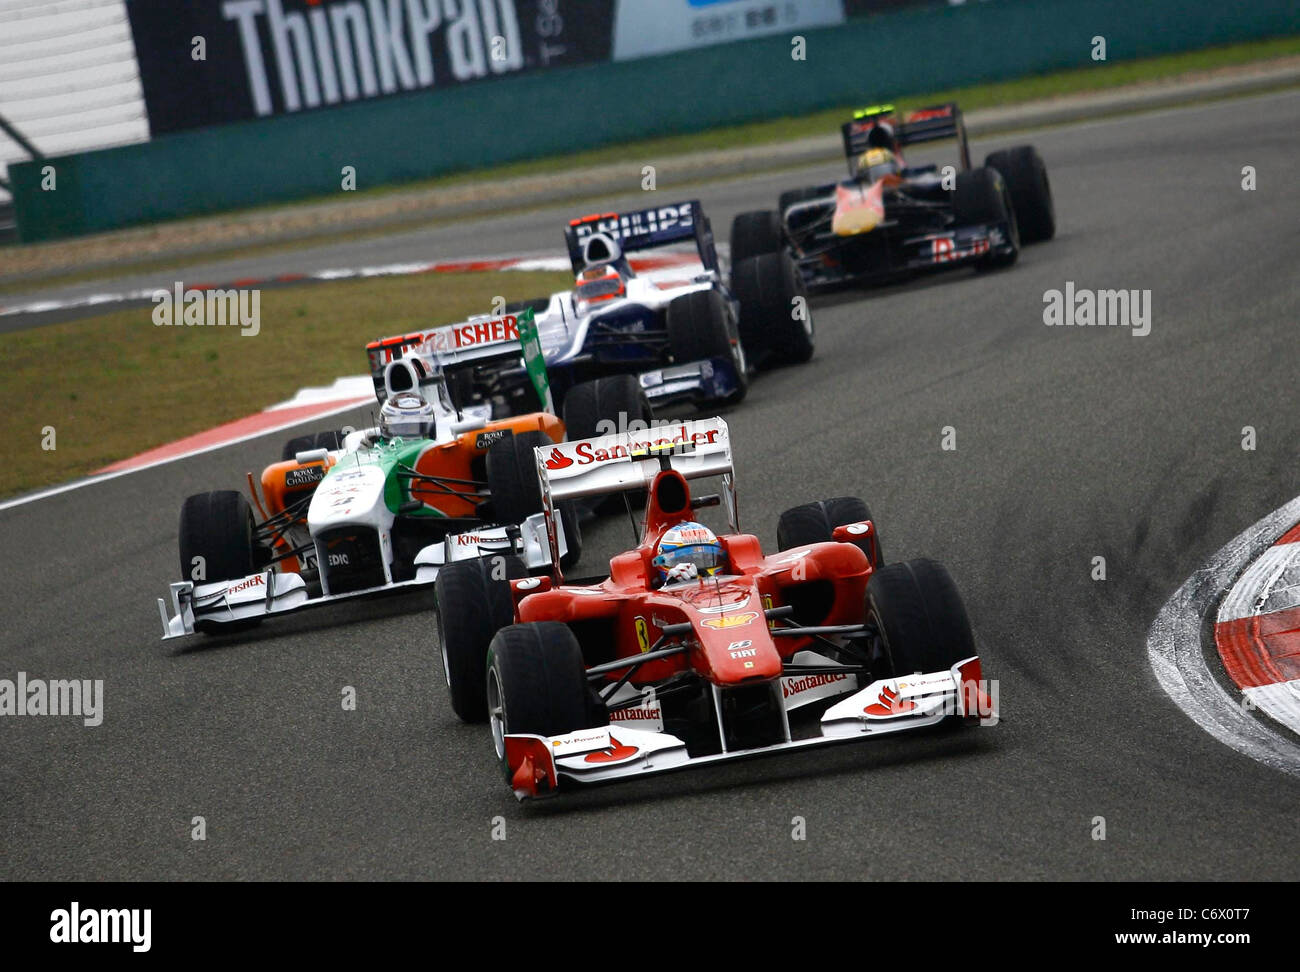 Fernando Alonso F1 Grand Prix Ferrari Formula One Driver Fernando Alonso The Chinese F1 Grand